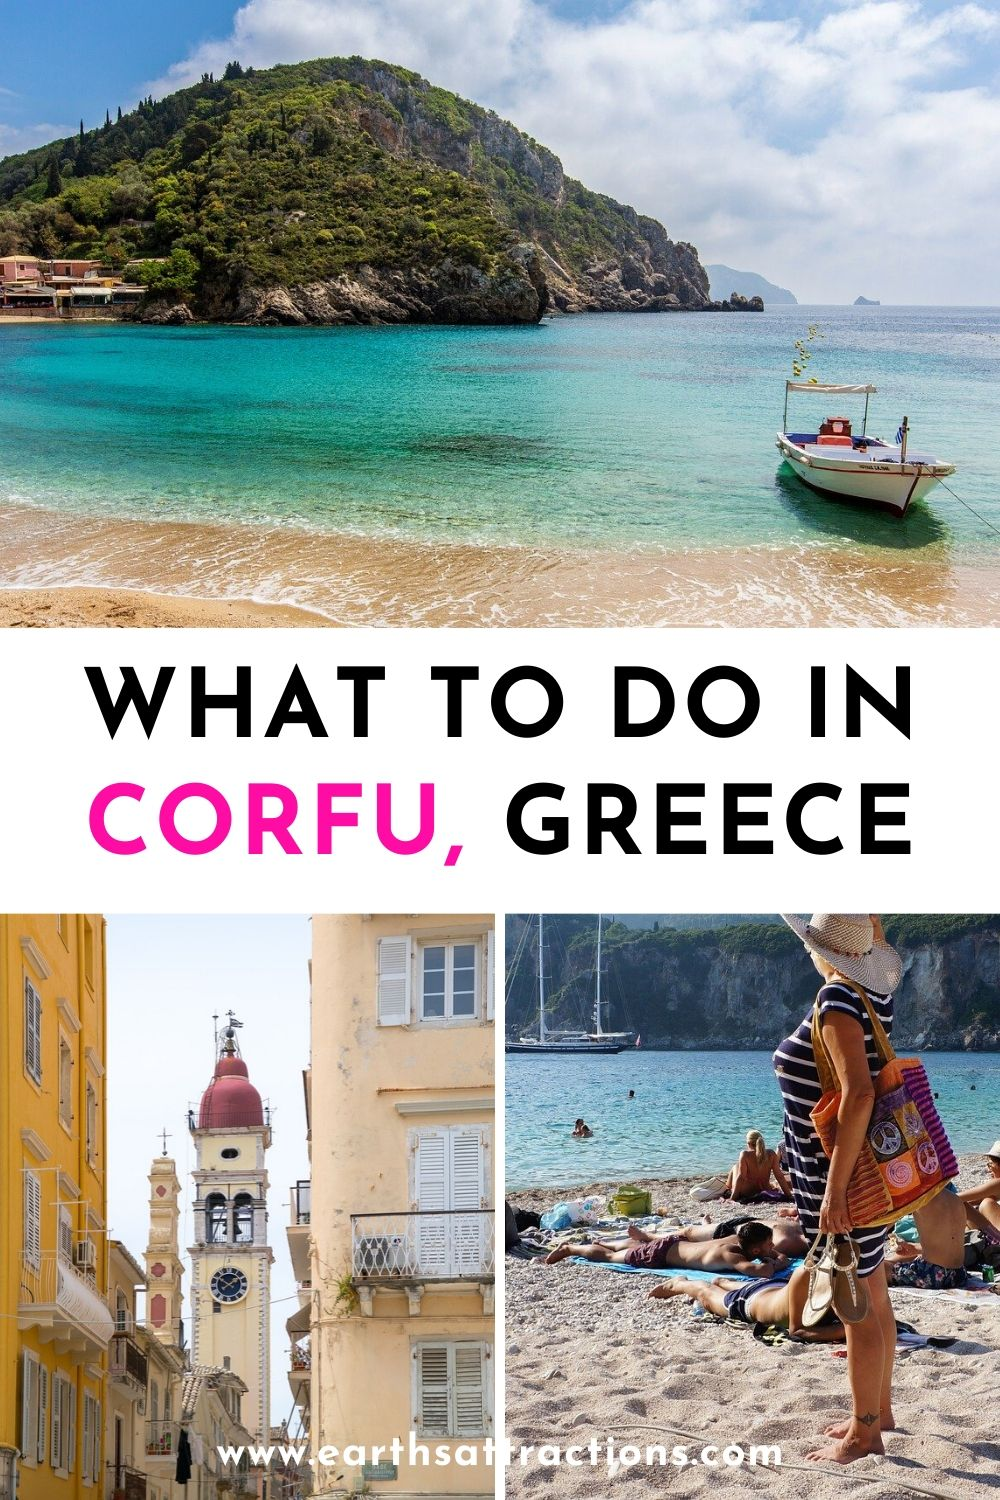 Wondering what to do in Corfu, Greece? Read this article and find out the top things to do in Corfu on your first trip. Cool Corfu activities included! #corfu #greece #europe #traveldestinations #remotedestinations #greekislands #earthsattractions #thingstodo #greecetravel